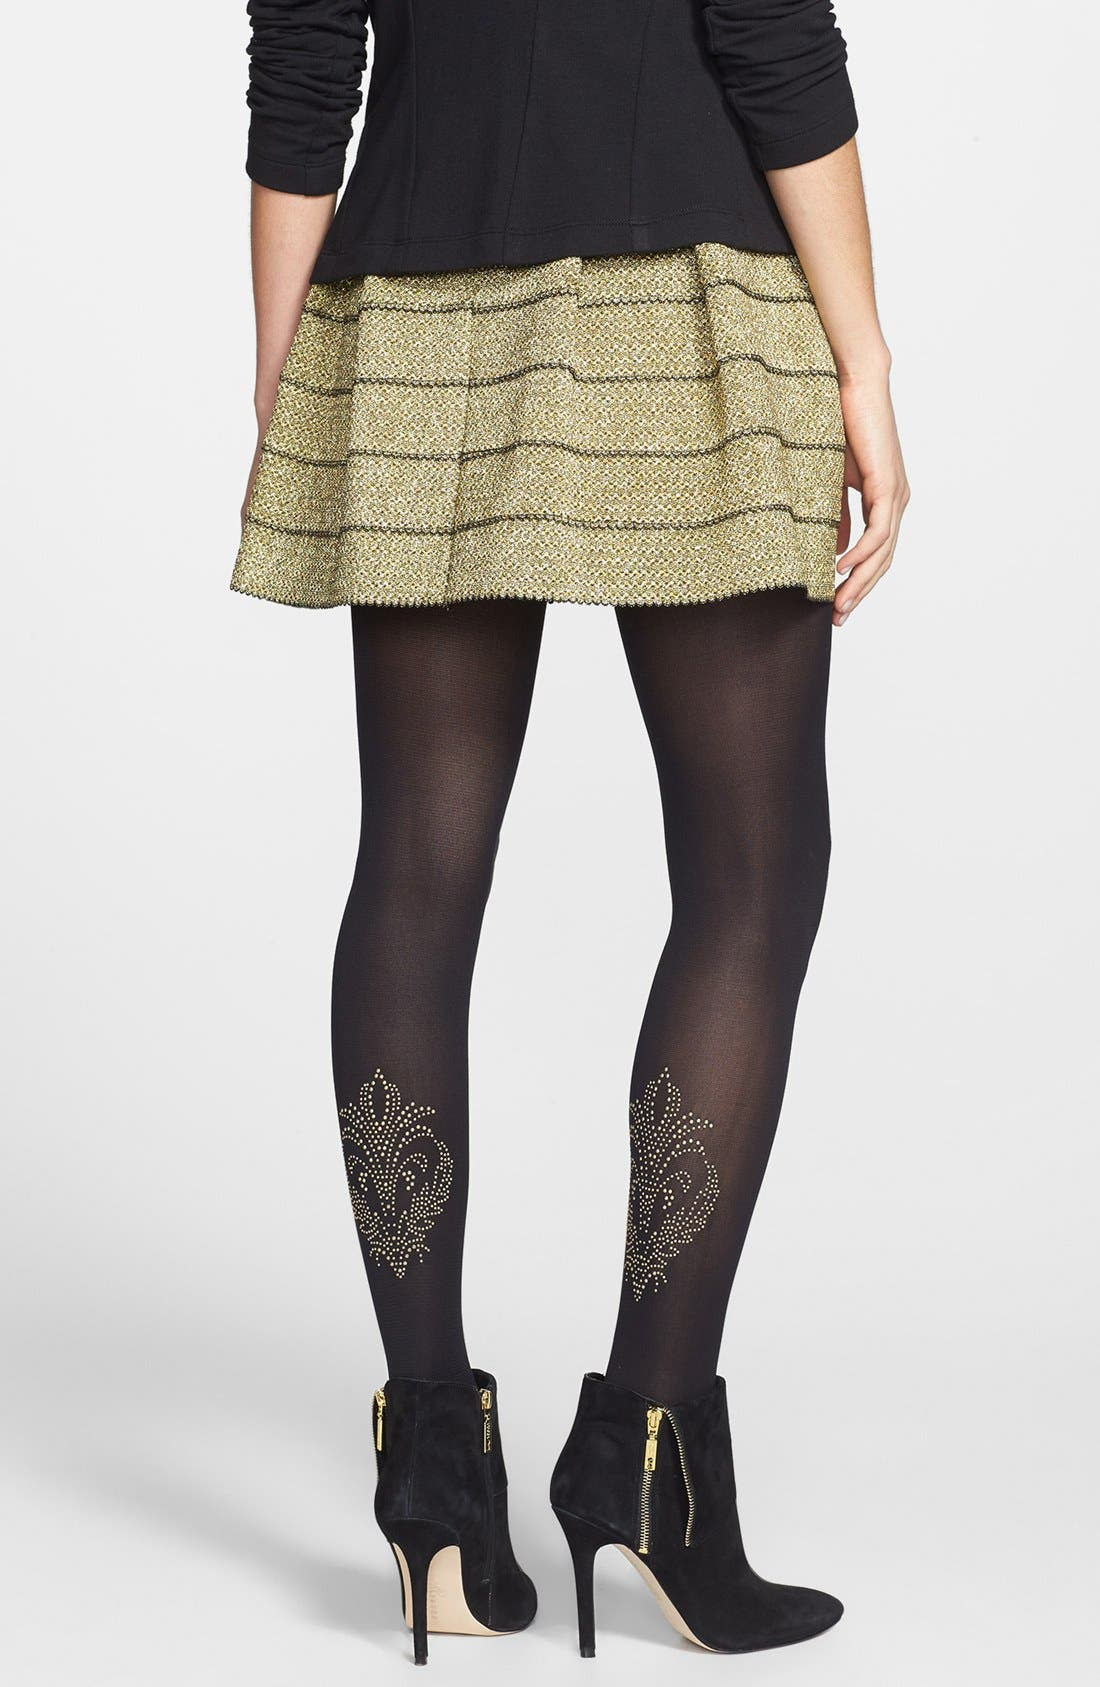 Alternate Image 1 Selected - Pretty Polly 'Ornate' Tights